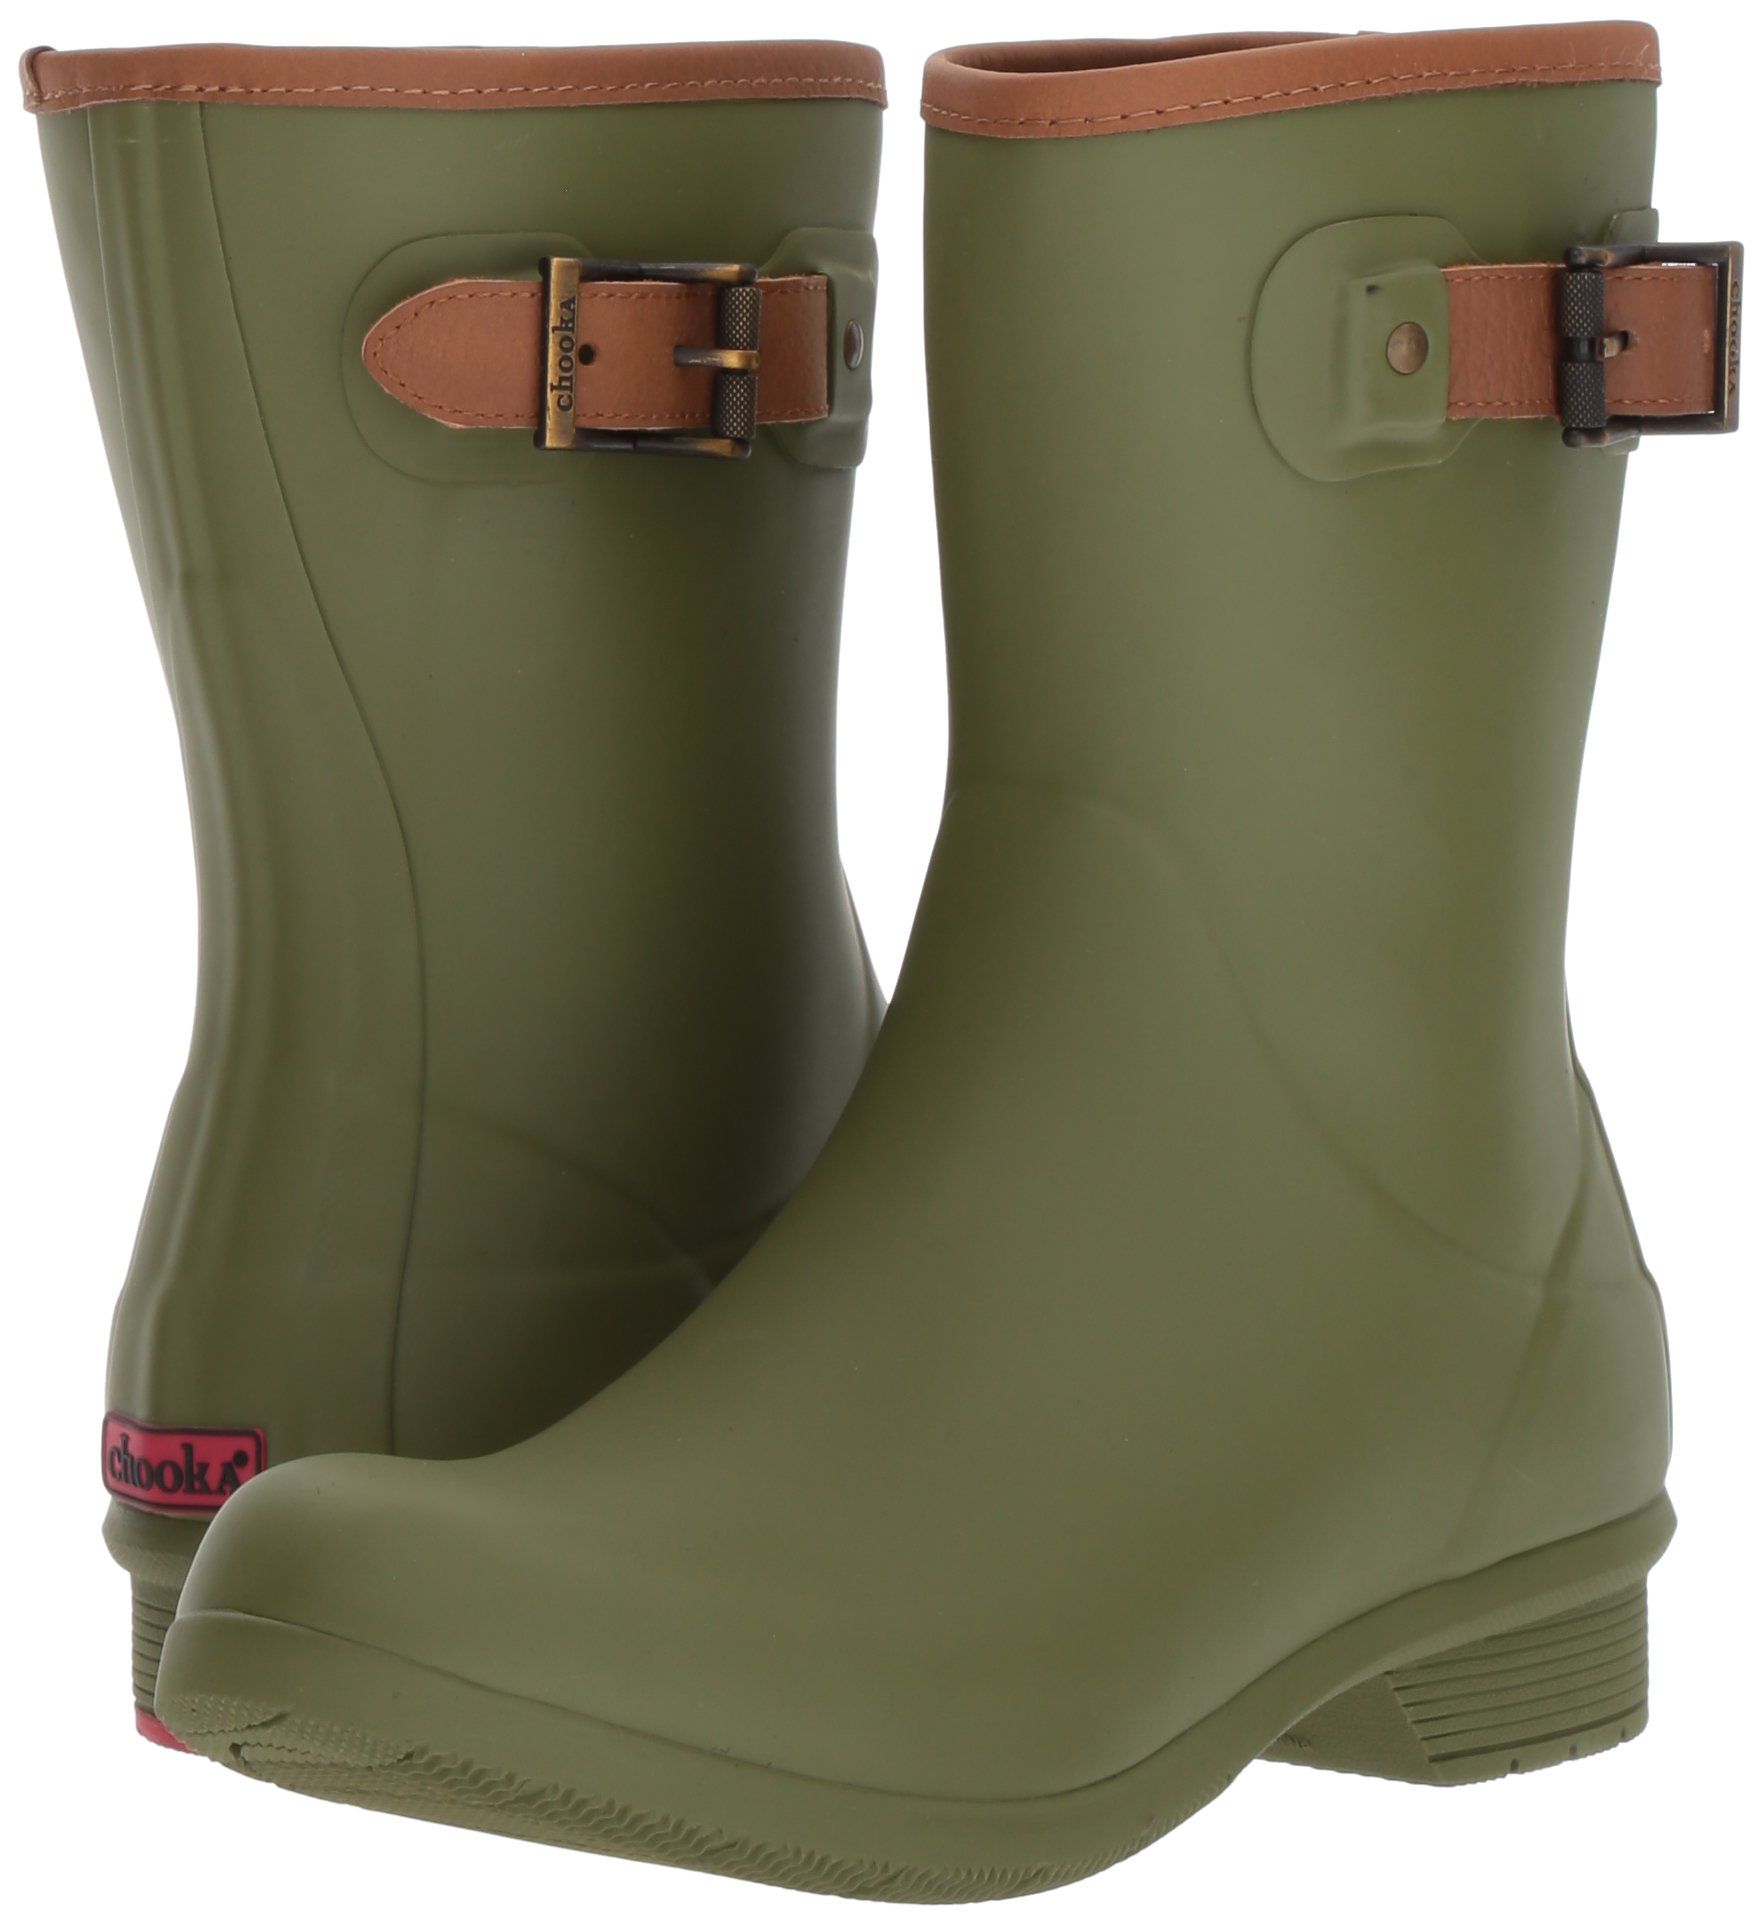 Chooka Women's Mid-Height Memory Foam Rain Boot, Olive, 9 M US by Chooka (Image #6)